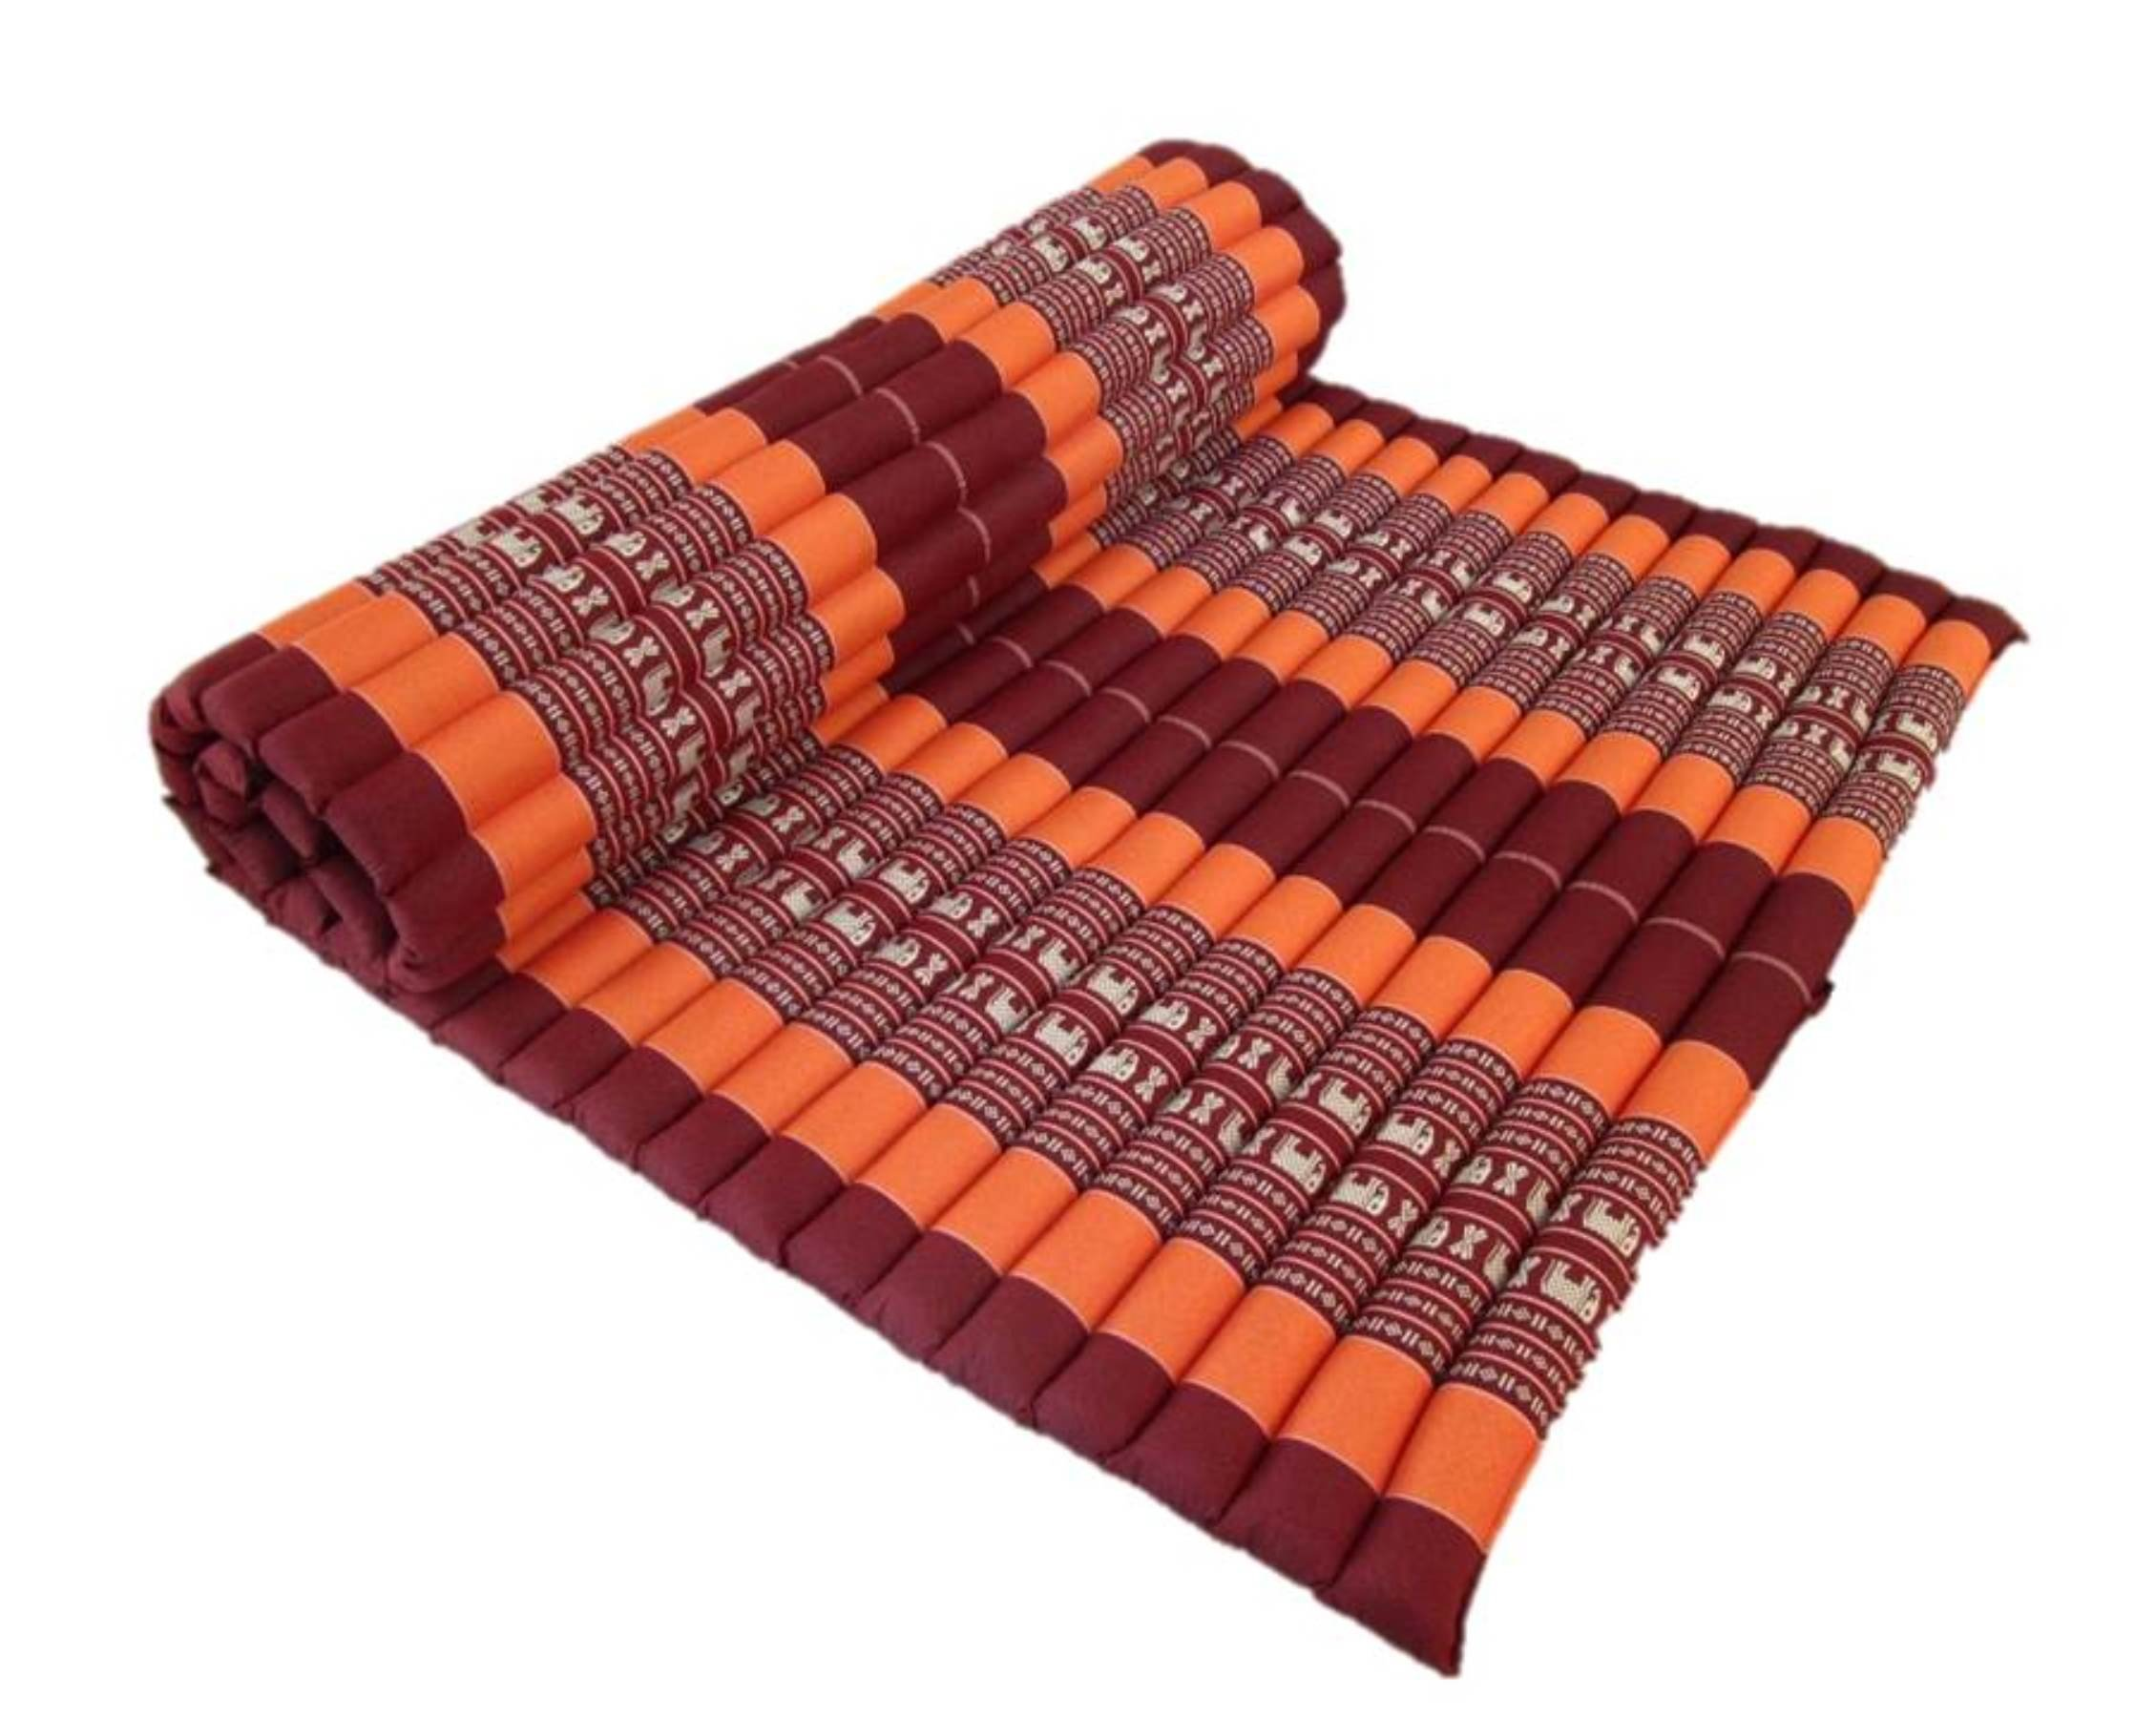 Large Kapok Stuffing Thai Yoga Mattress Roll Up Camping Sleeping Mat Meditation Cushion 80 Inches (Elephant Tangerine)